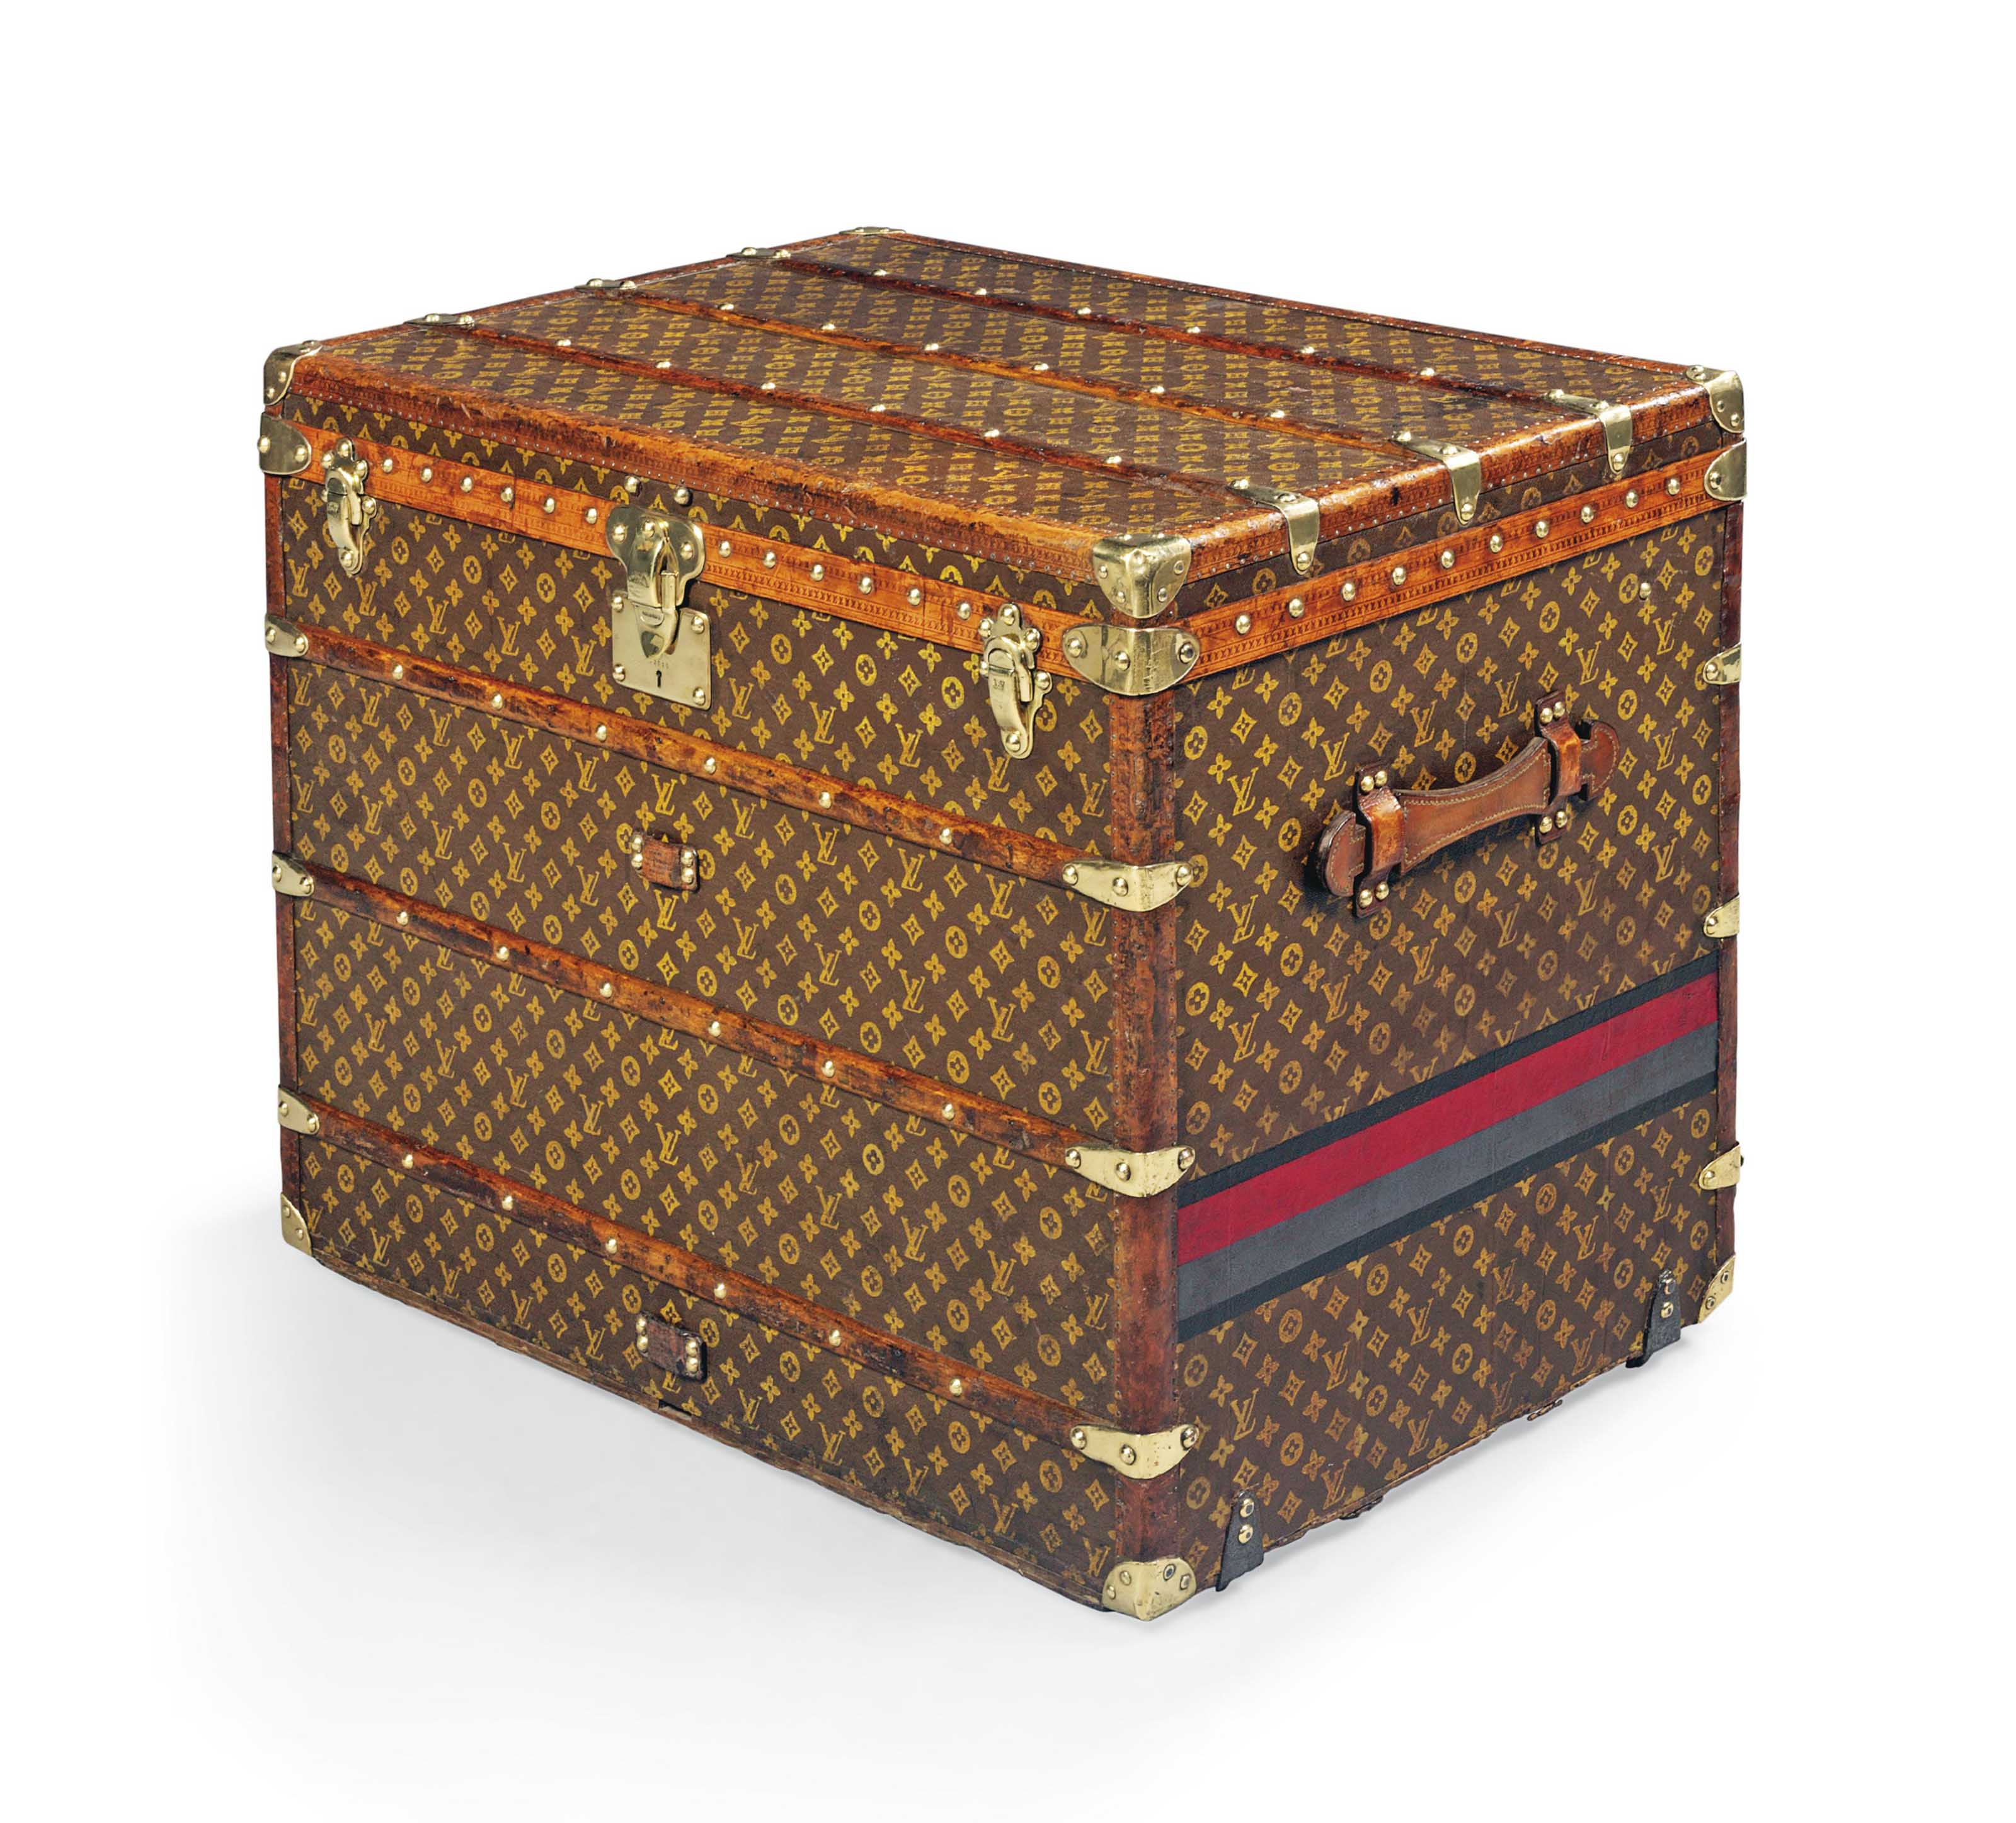 A TALL TRUNK IN MONOGRAM CANVAS